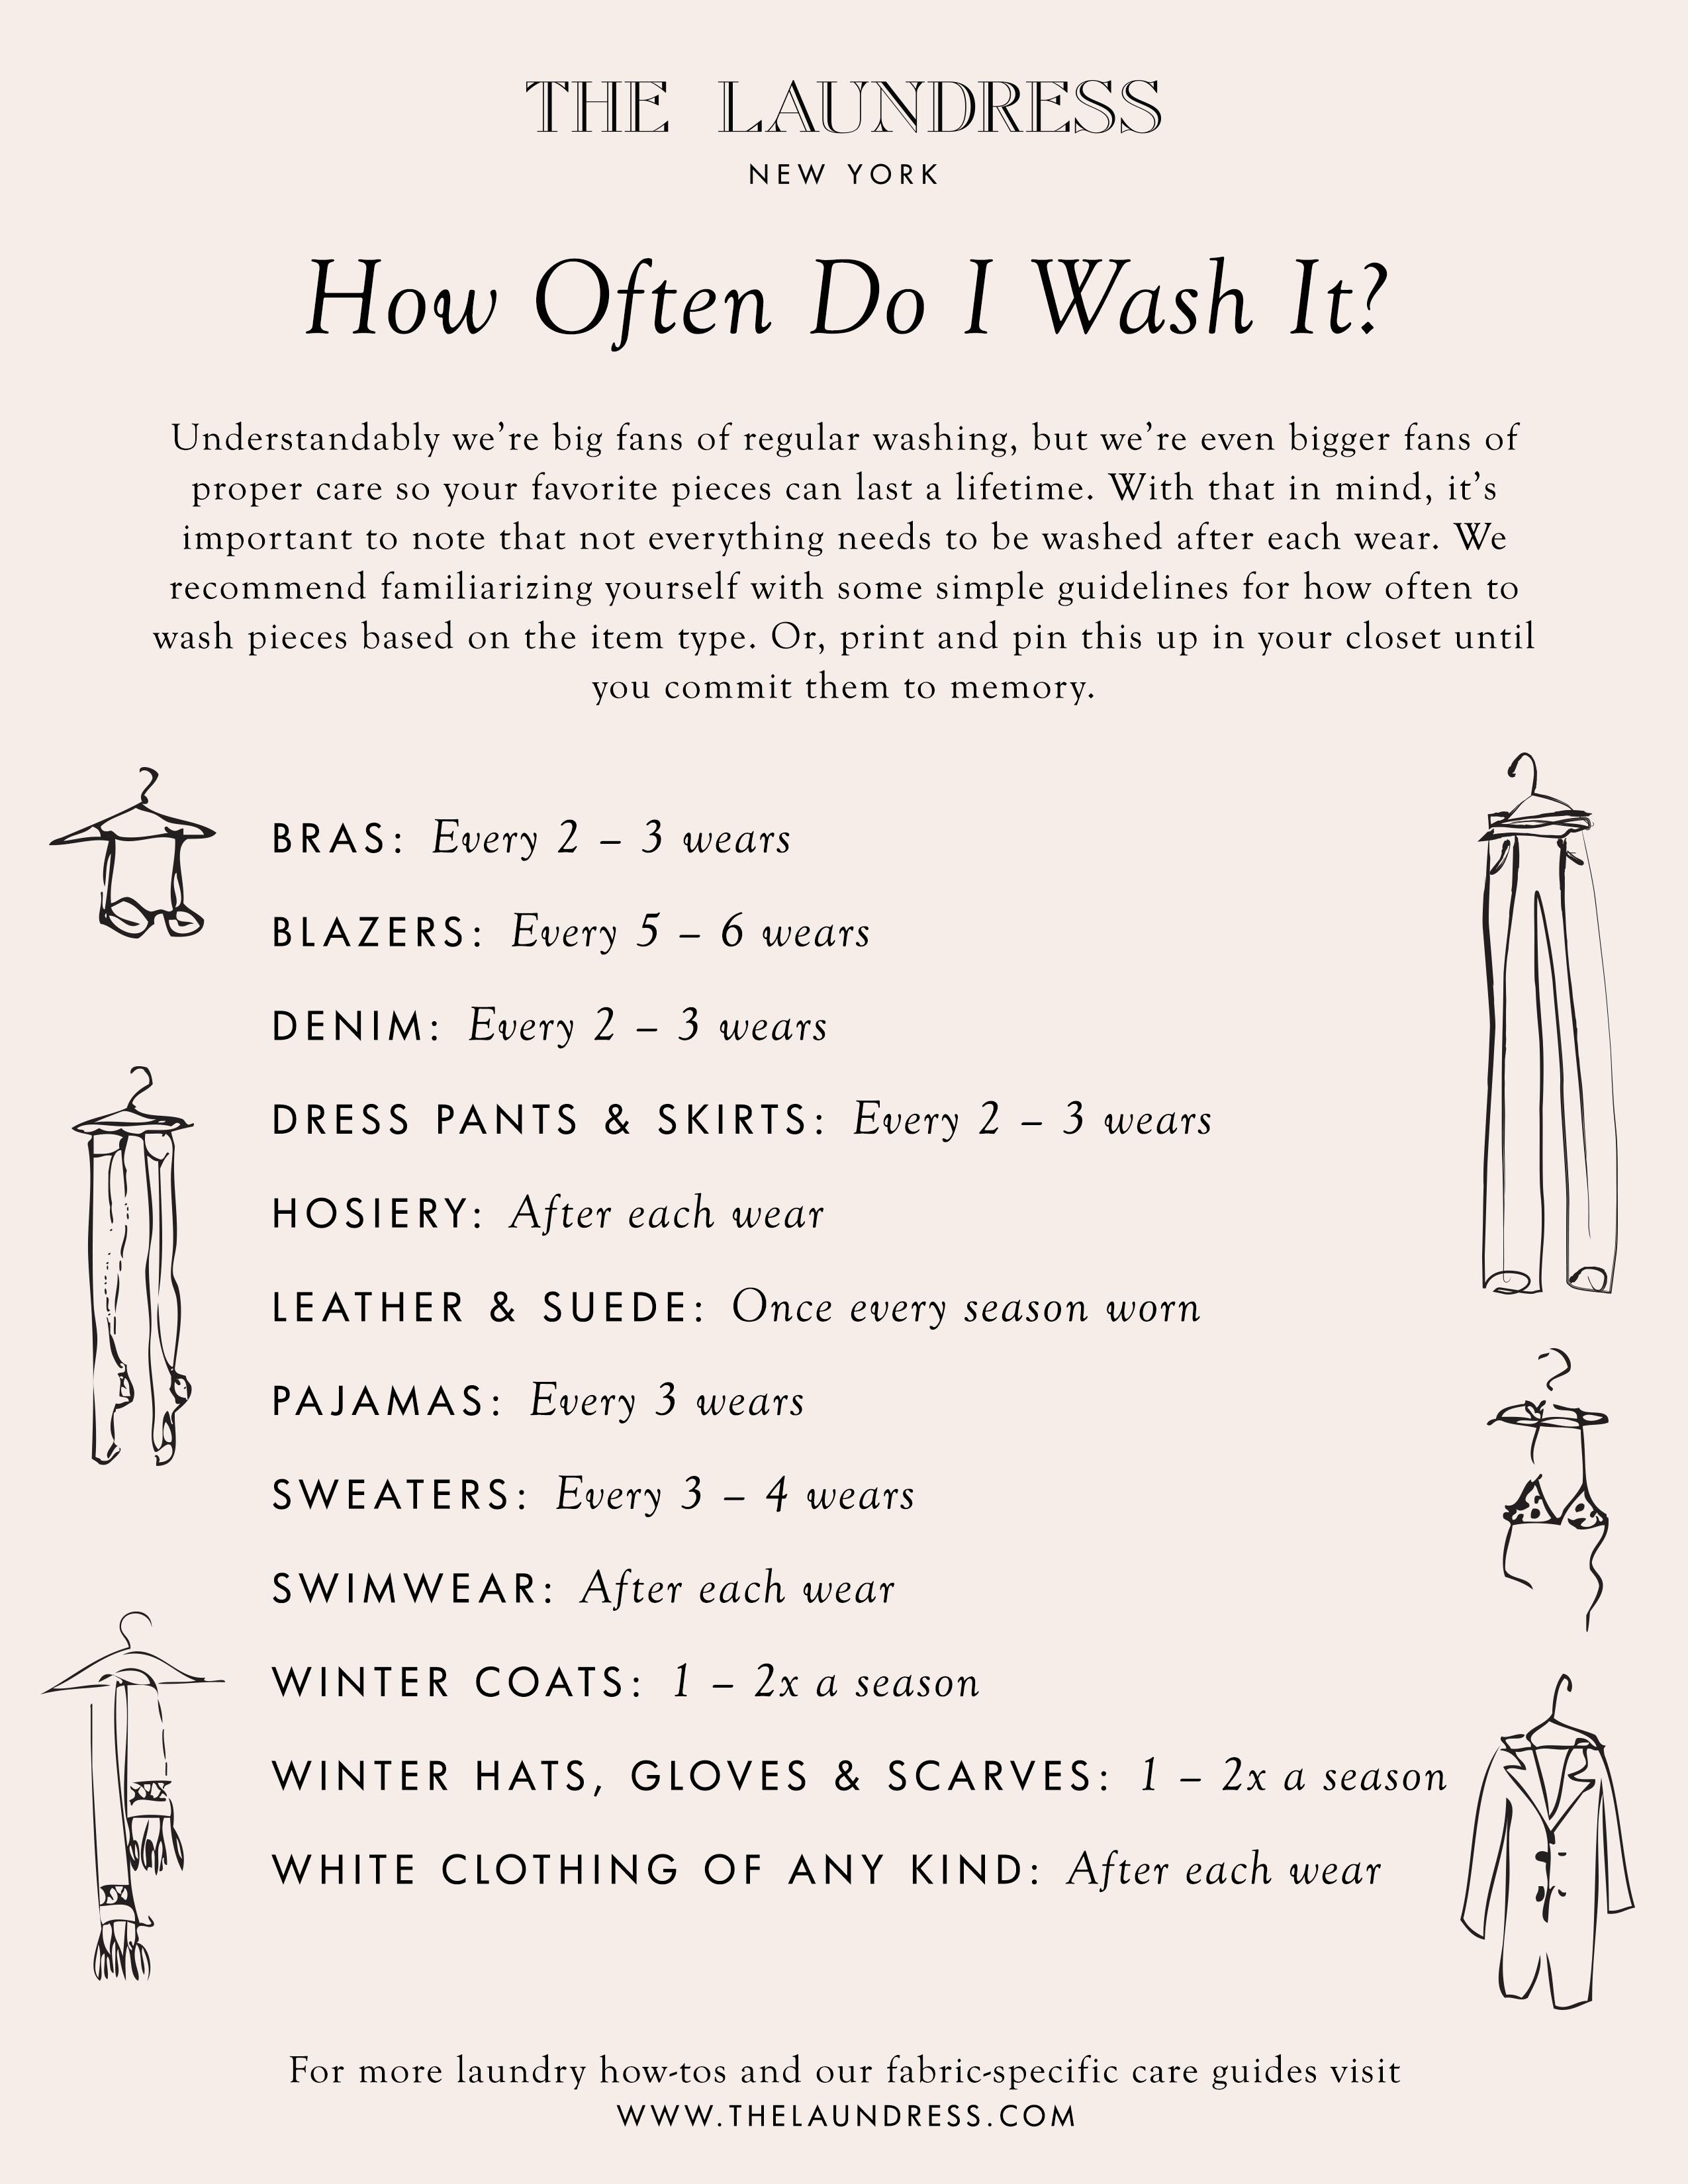 How Often Do I Wash It Cleaning Hacks House Cleaning Tips Clean House